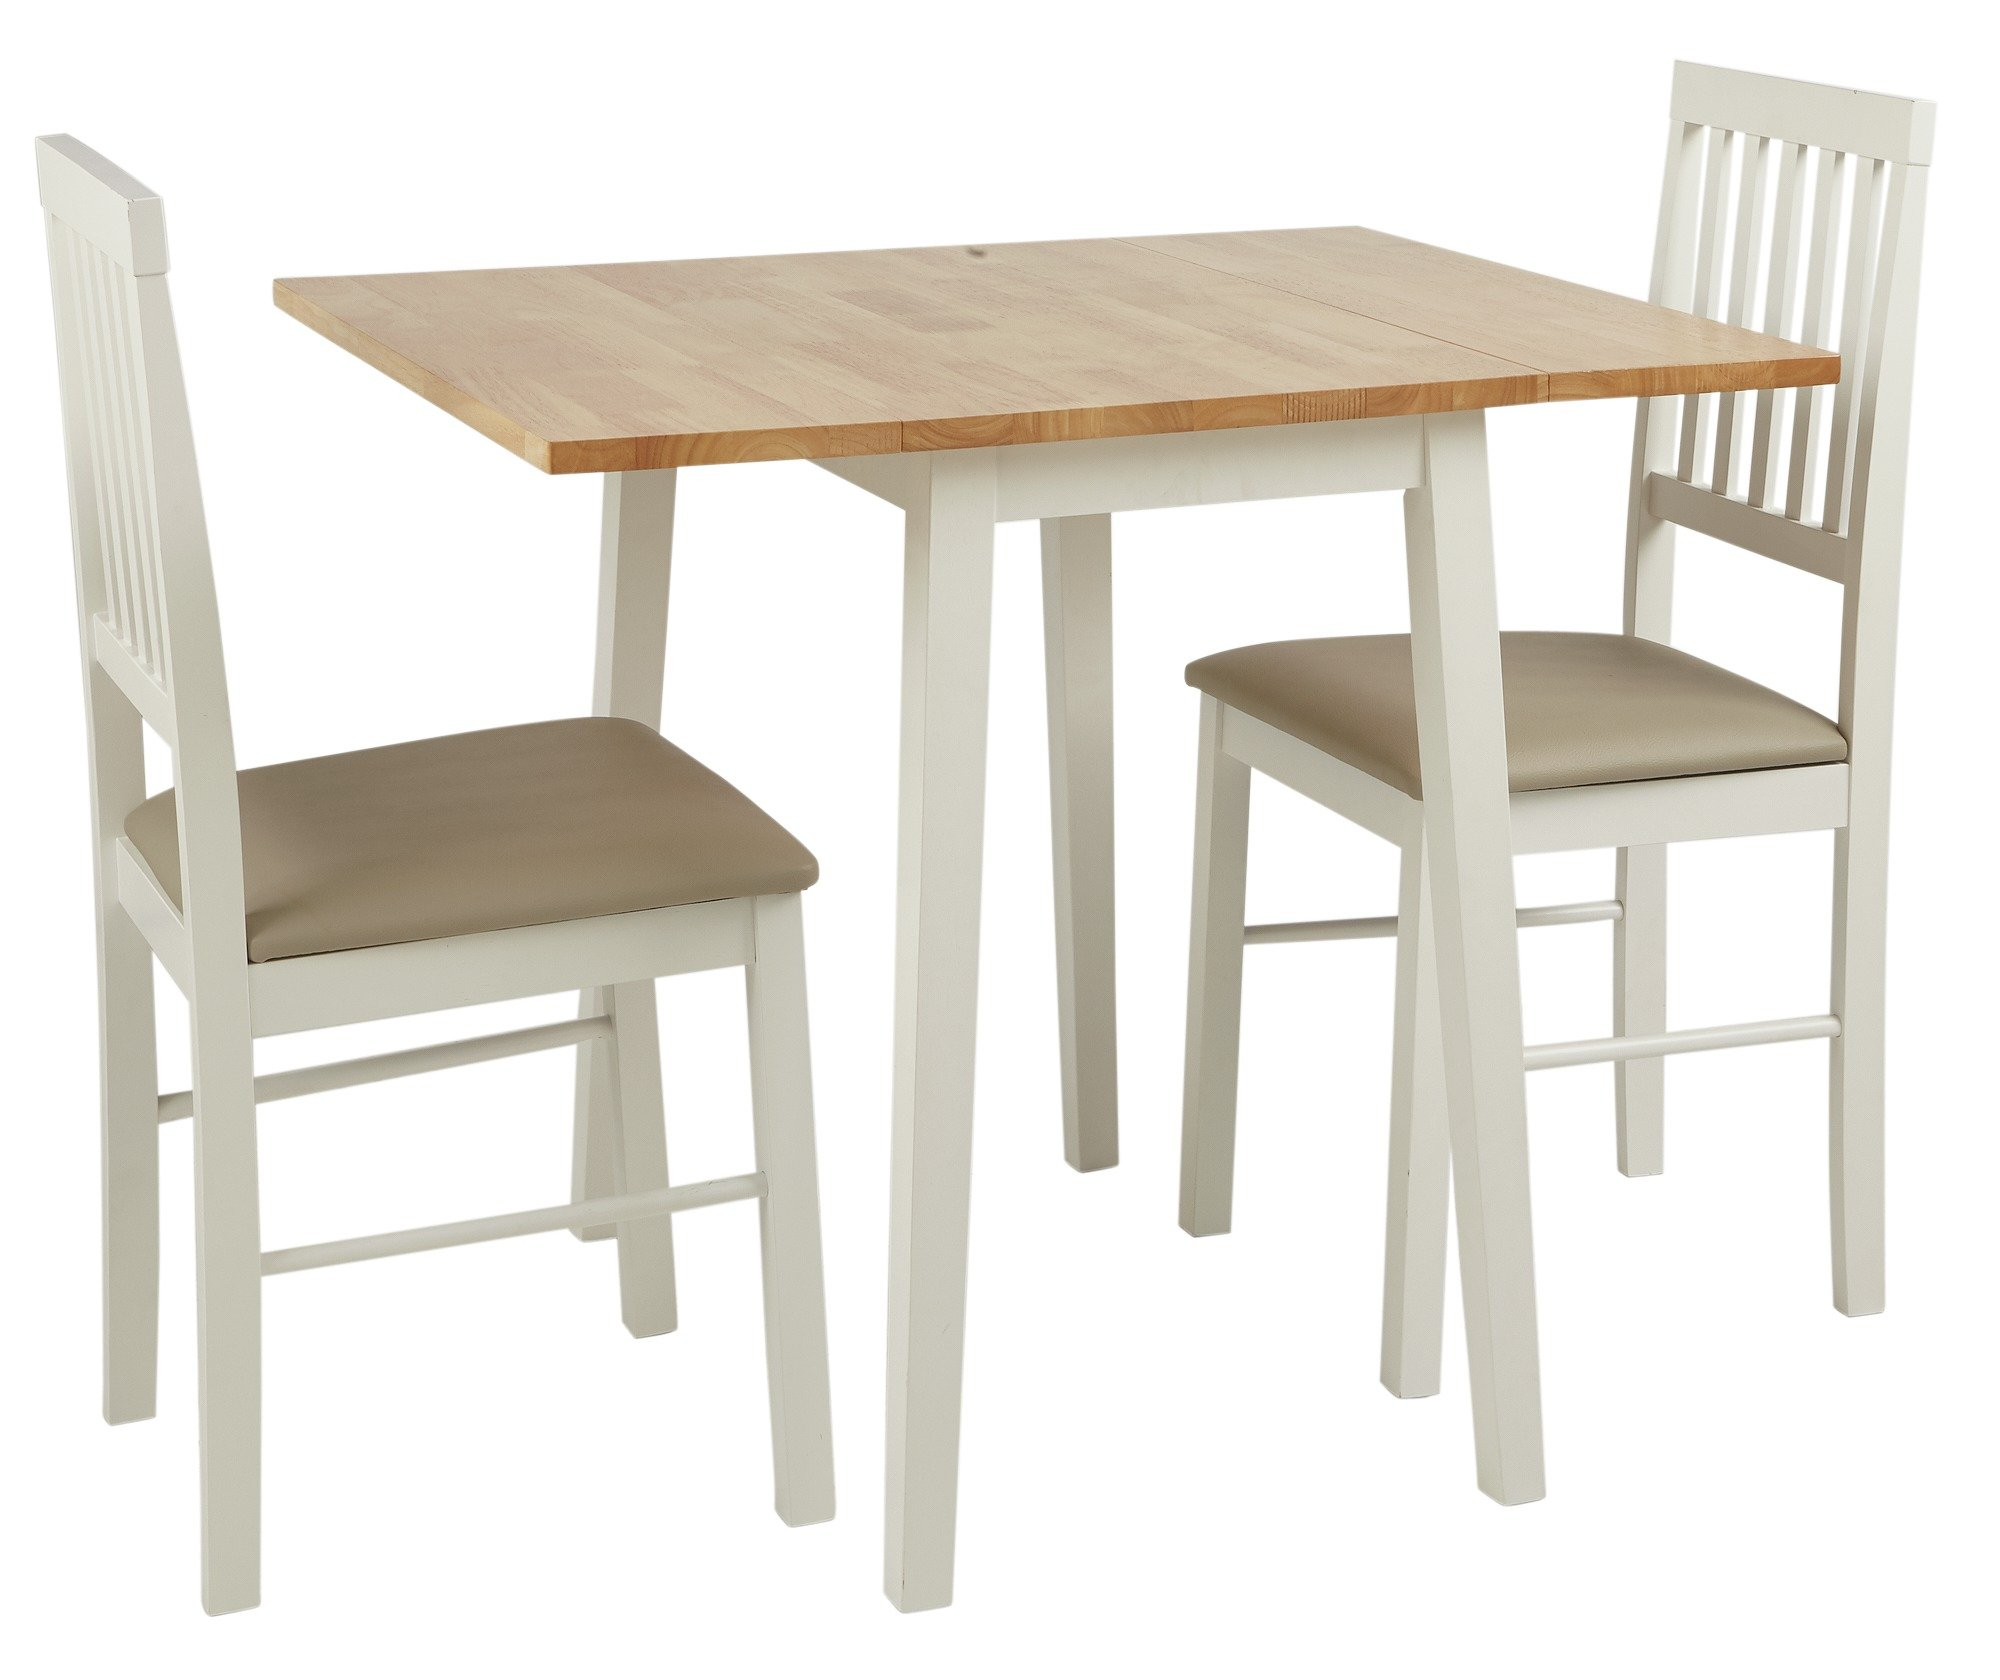 table and 2 chairs cheap office chair steel frame buy argos home kendal extendable wood two tone